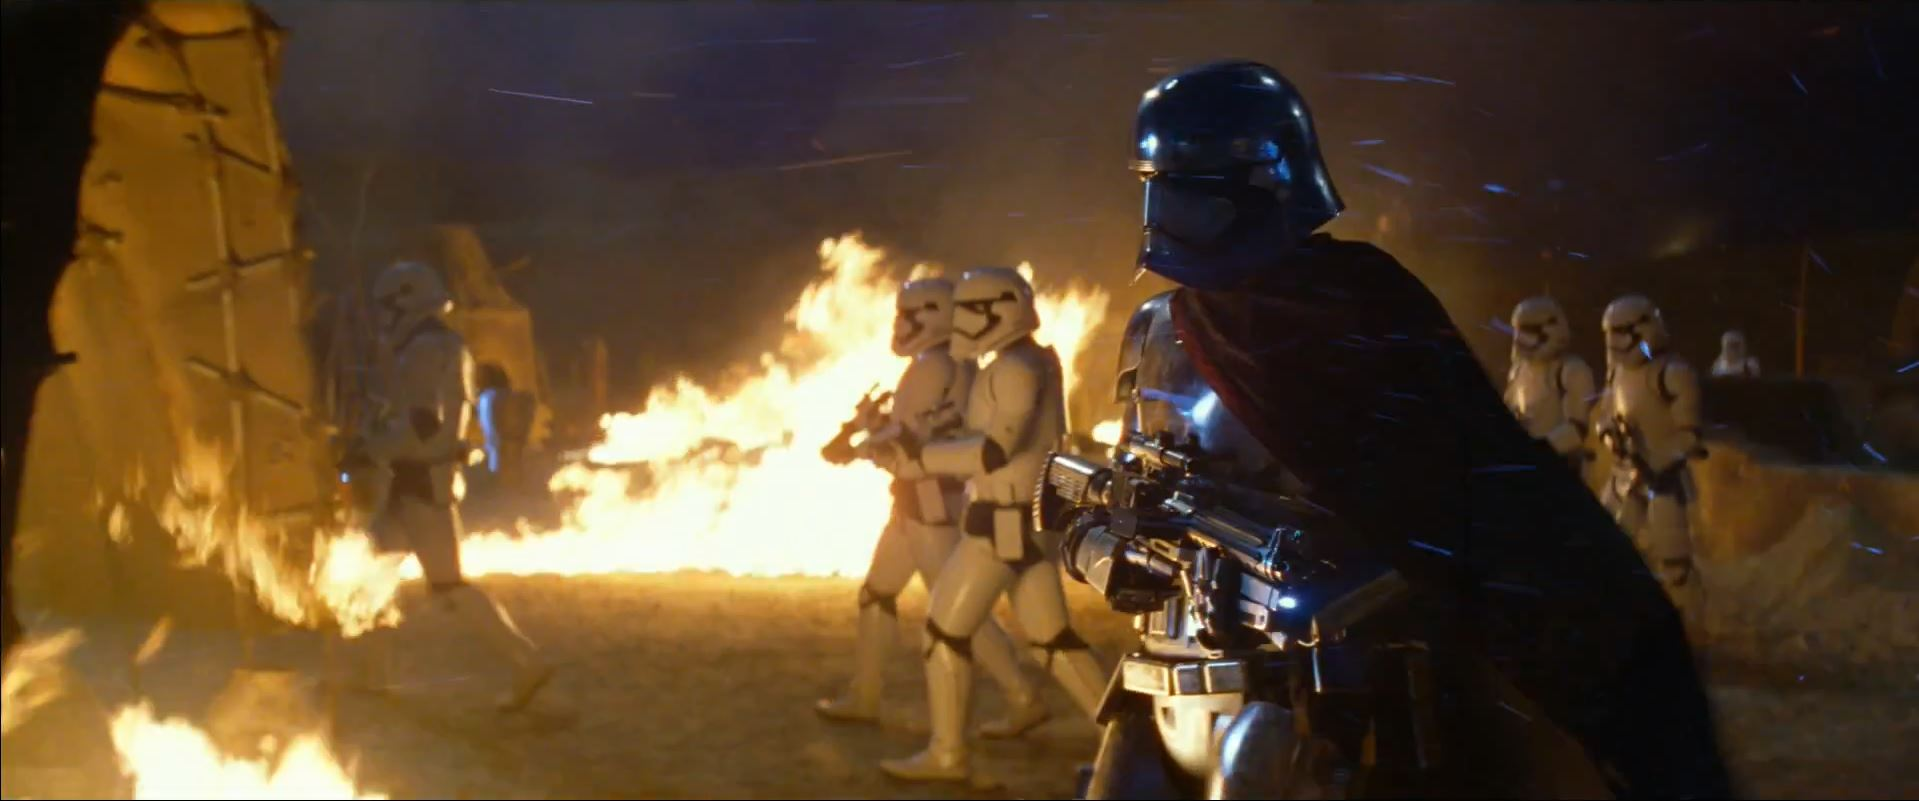 Captain Phasma (Gwendoline Christie) leads storm troopers in Stanley Kubrick shot